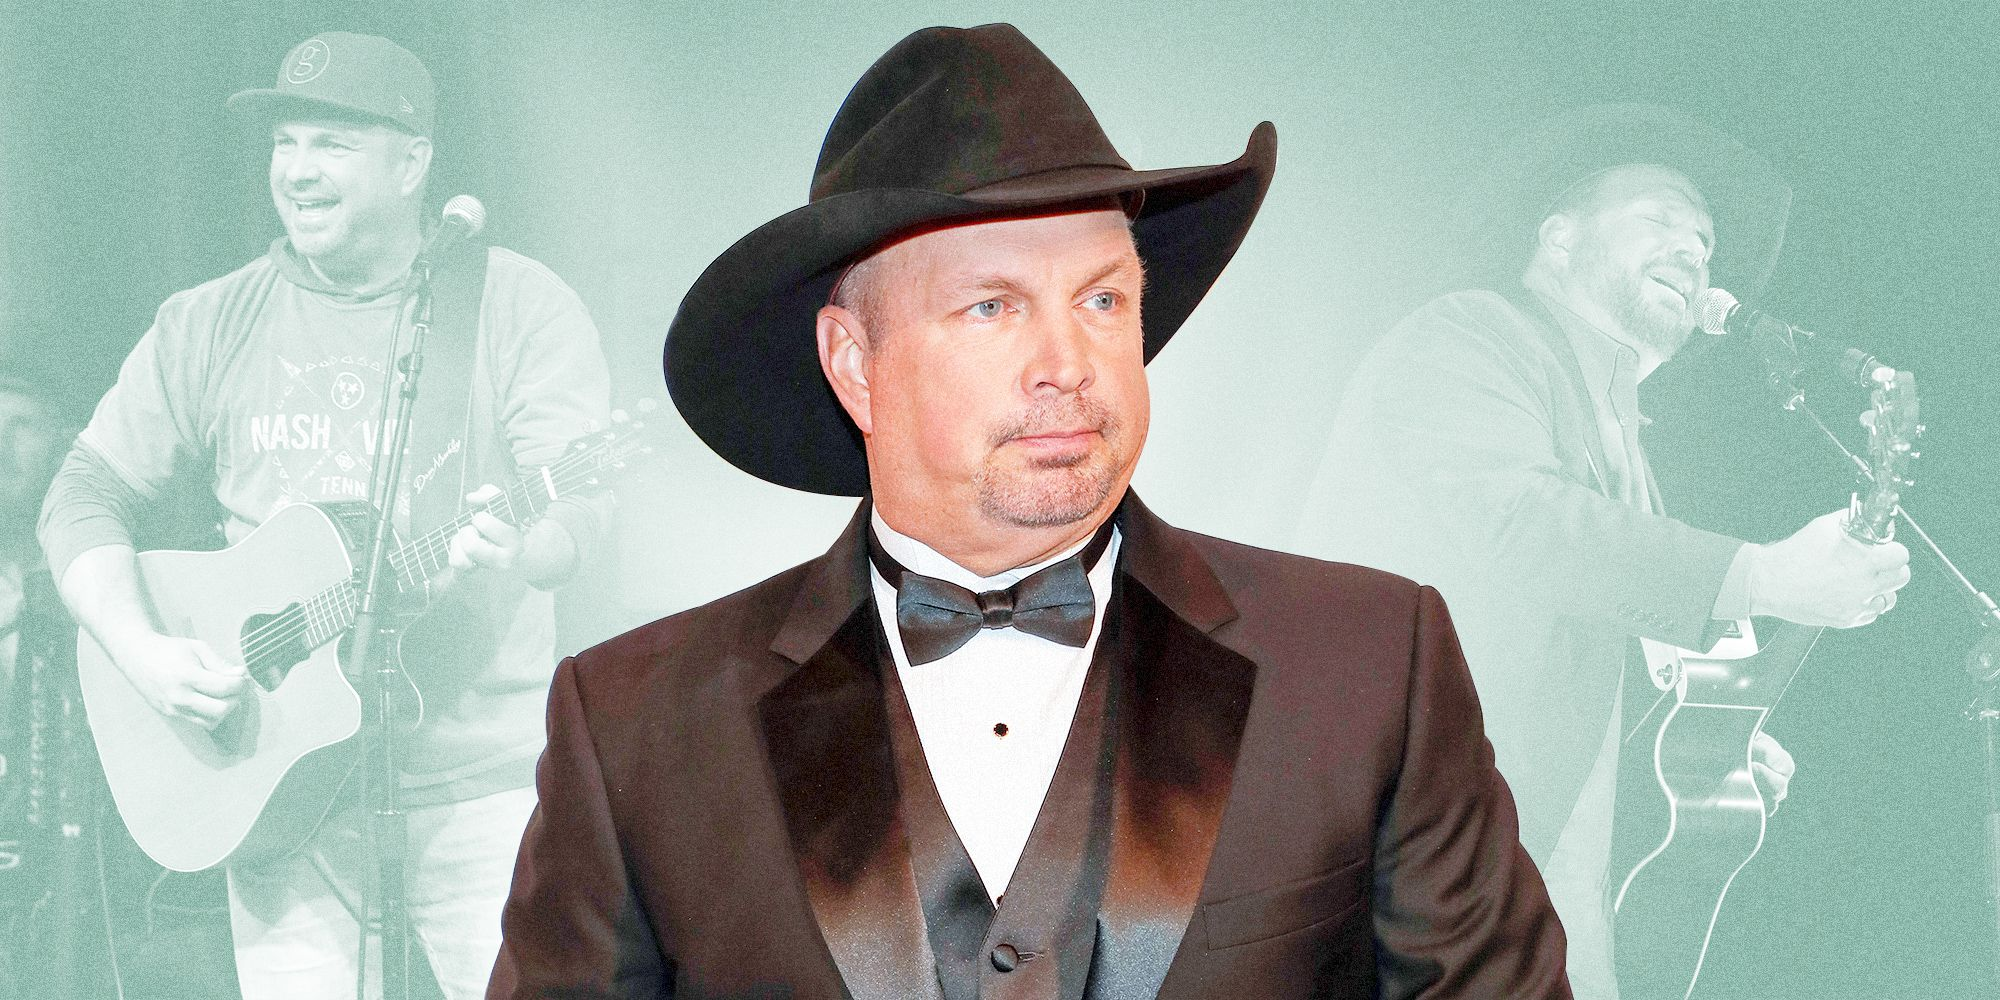 Garth Brooks and the Art of Arena-Sized Humility